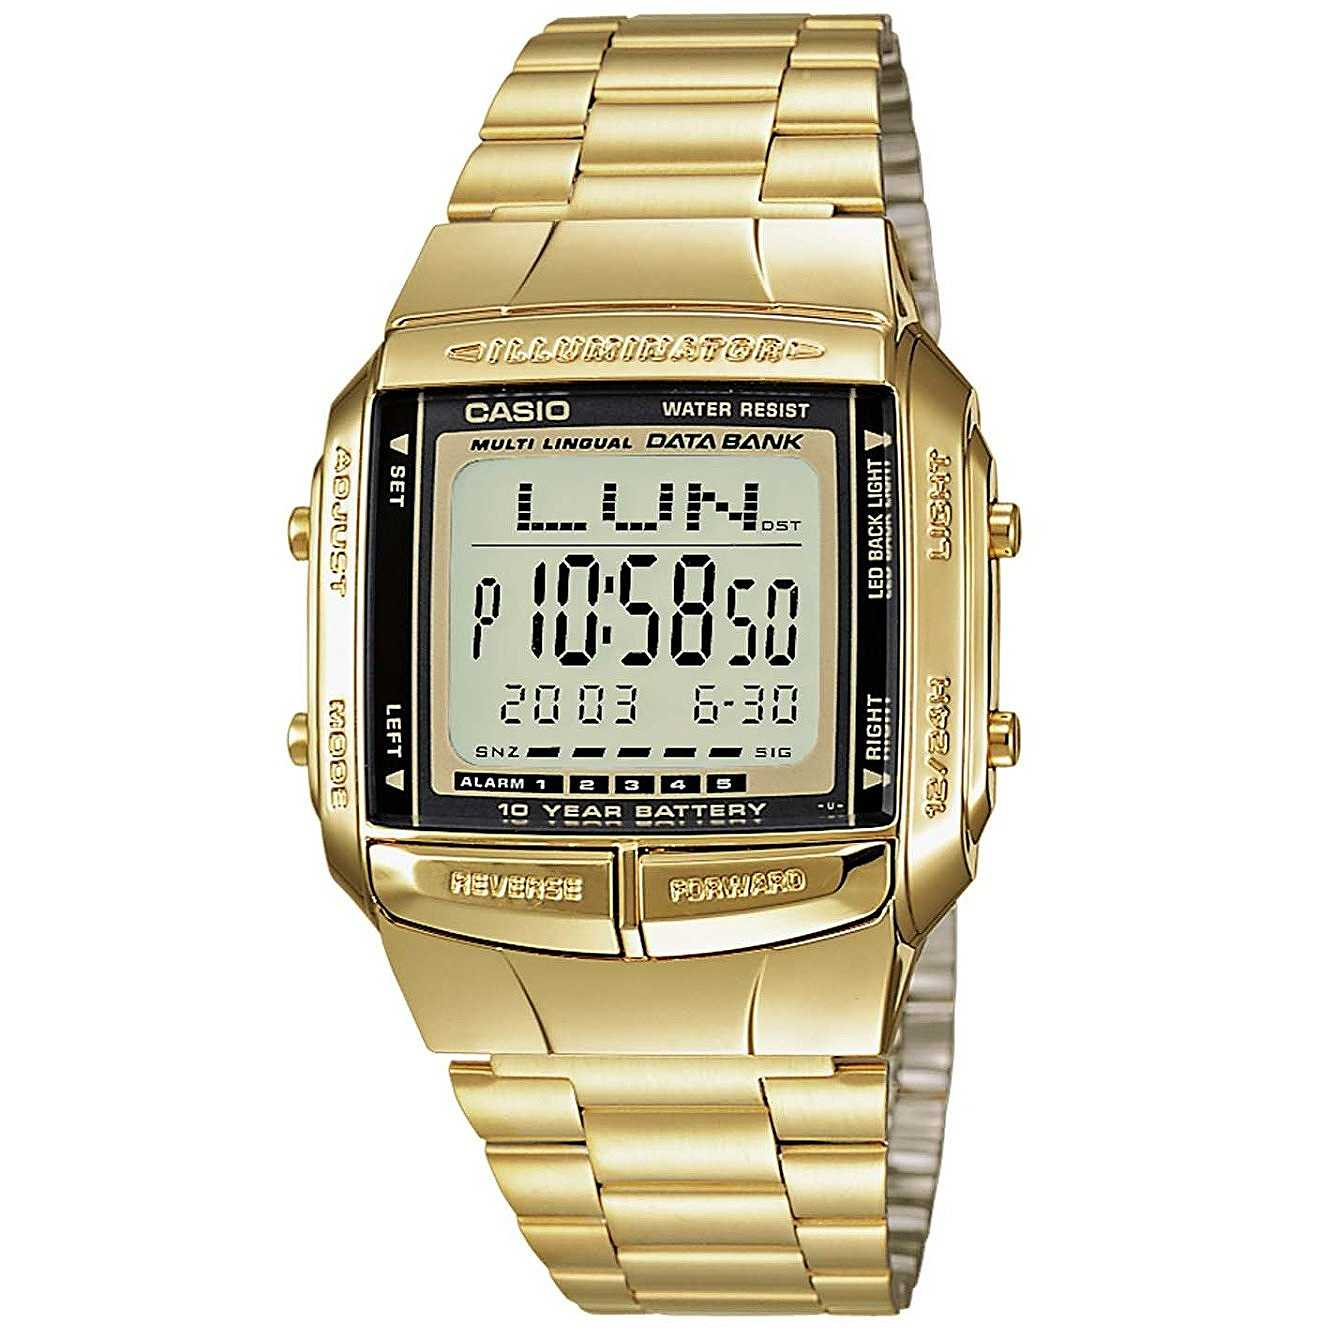 3faac5d85efd Orologio Digitale Unisex Casio Casio Collection DB-360GN-9AEF ...